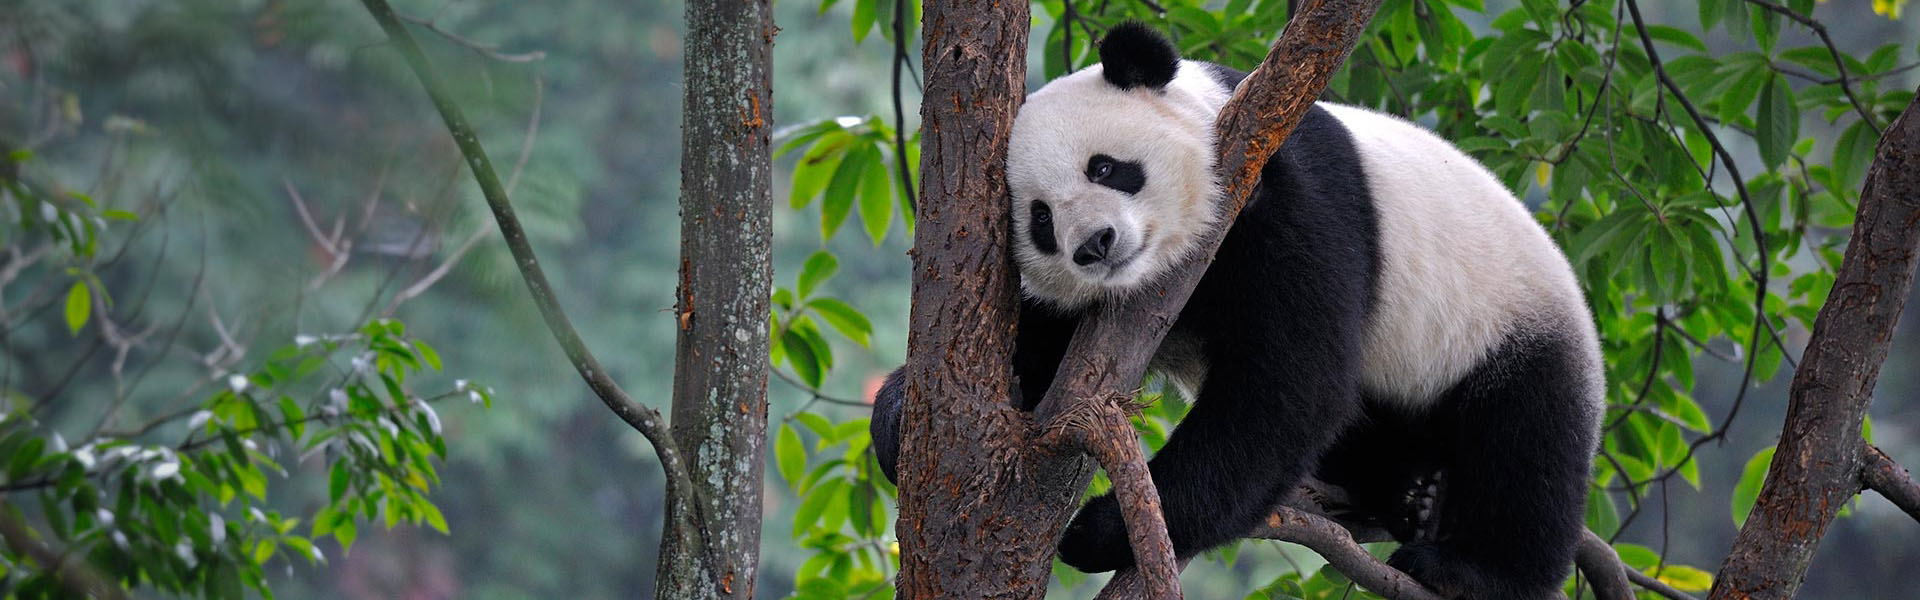 Giant Pandas, a national treasure of China